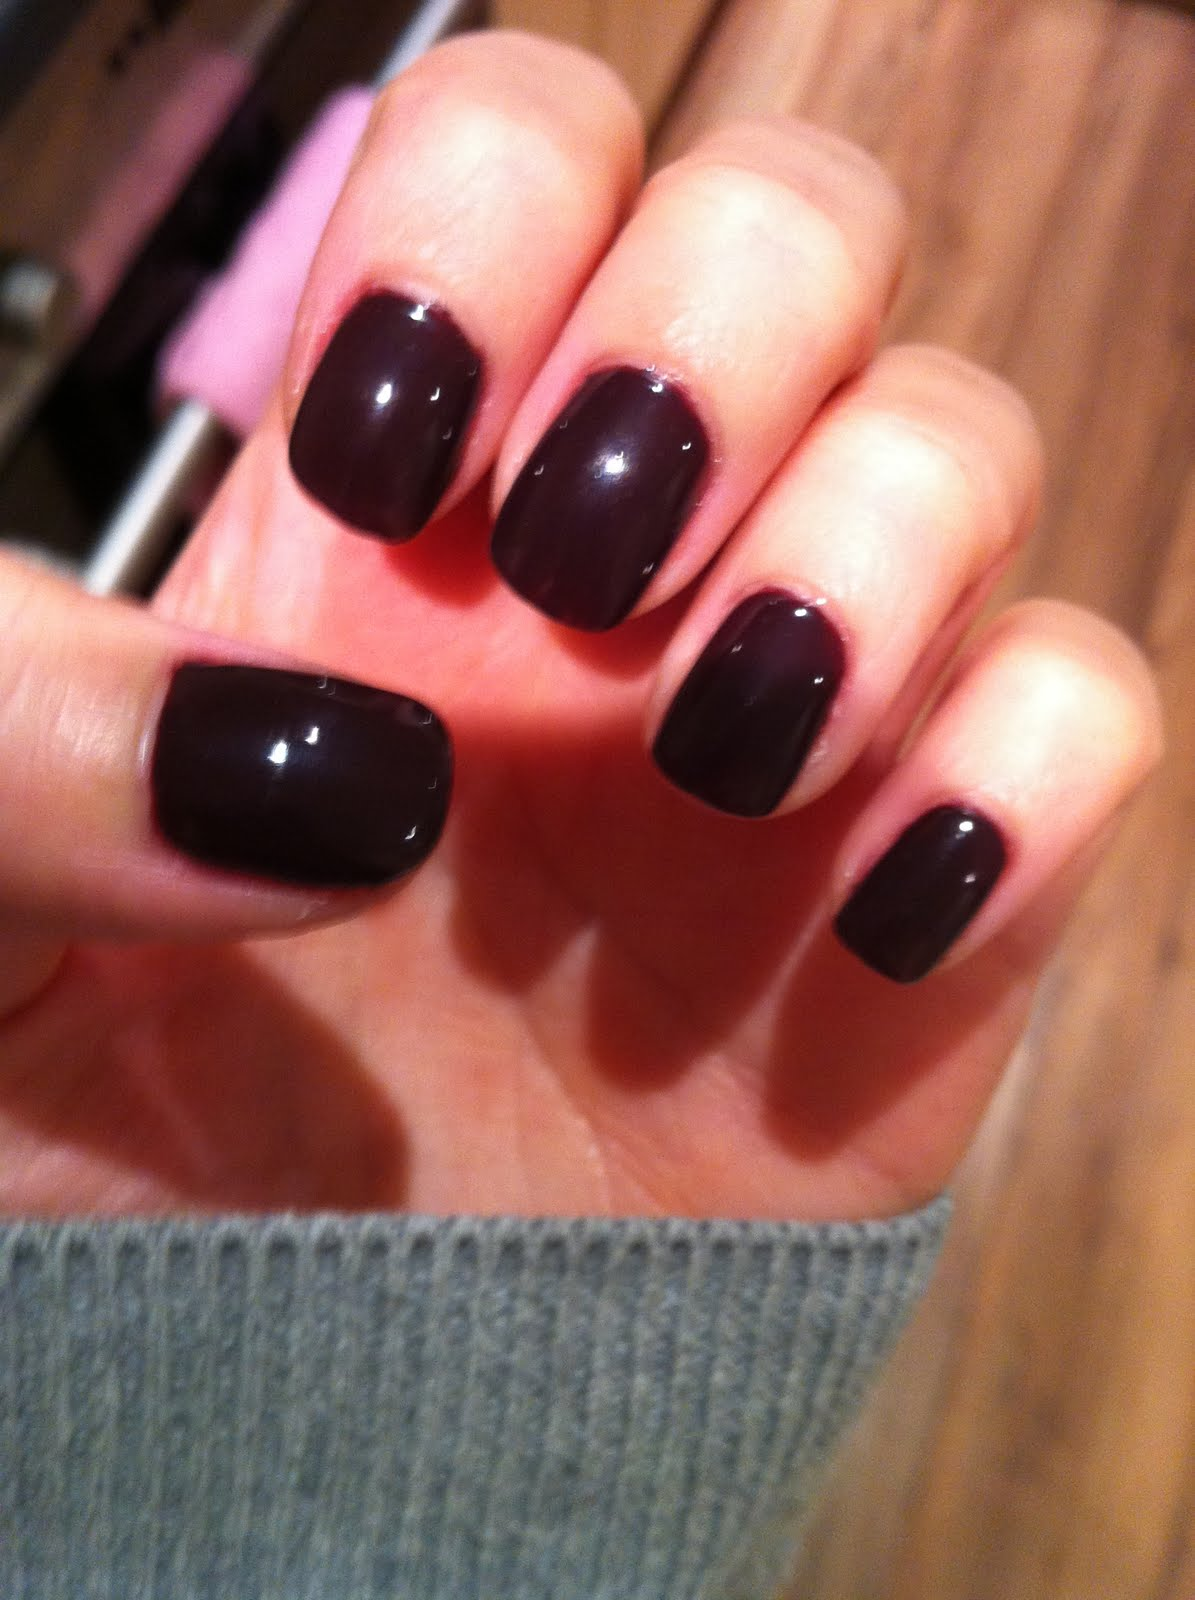 lettyho: Shellac gel manicure review